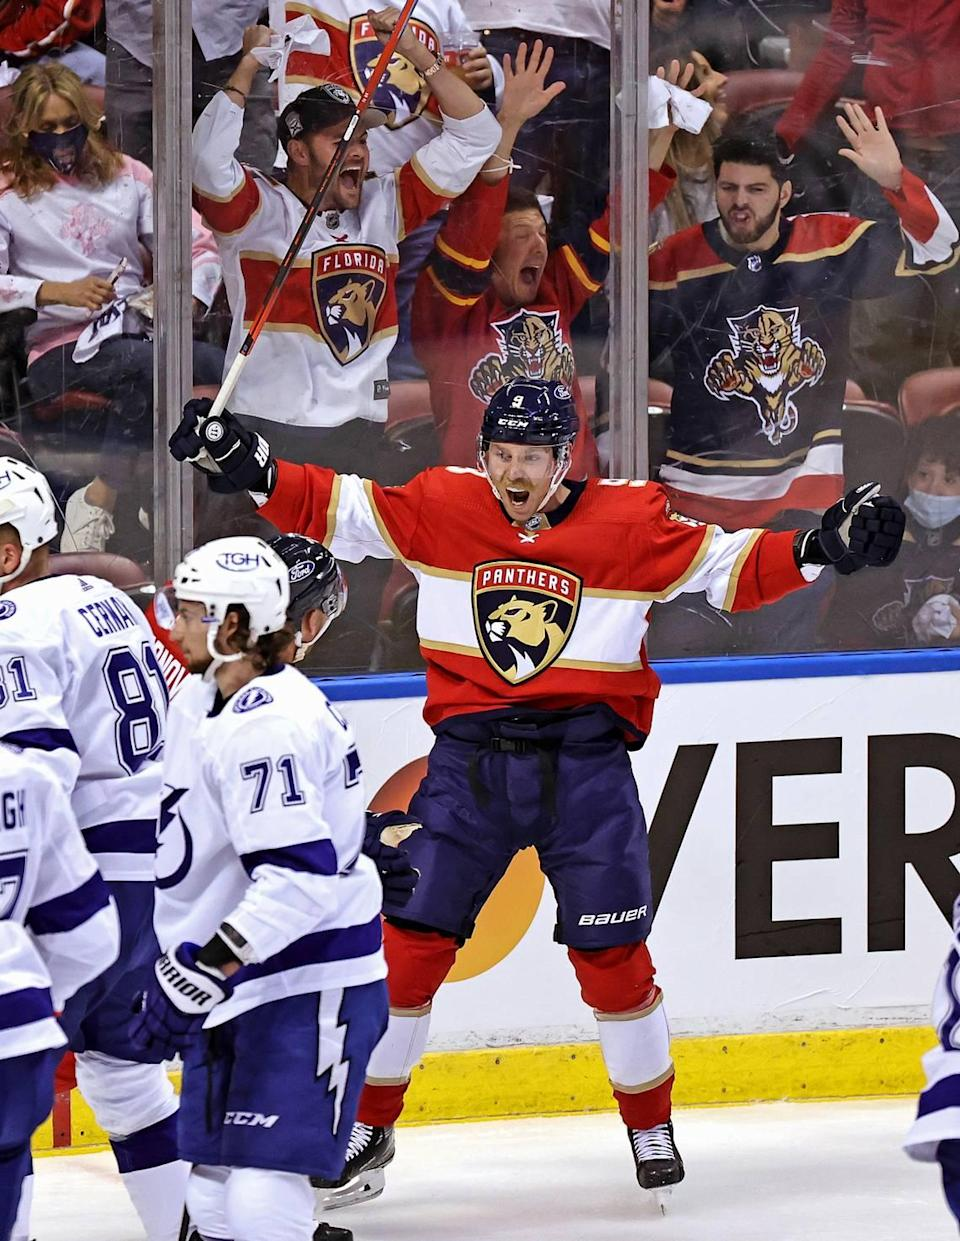 Florida Panthers center Sam Bennett reacts after a play against the Tampa Bay Lightning during the first period of game 1 of their first round NHL Stanley Cup series at the BB&T Center on Sunday, May 16, 2021 in Sunrise, Fl.